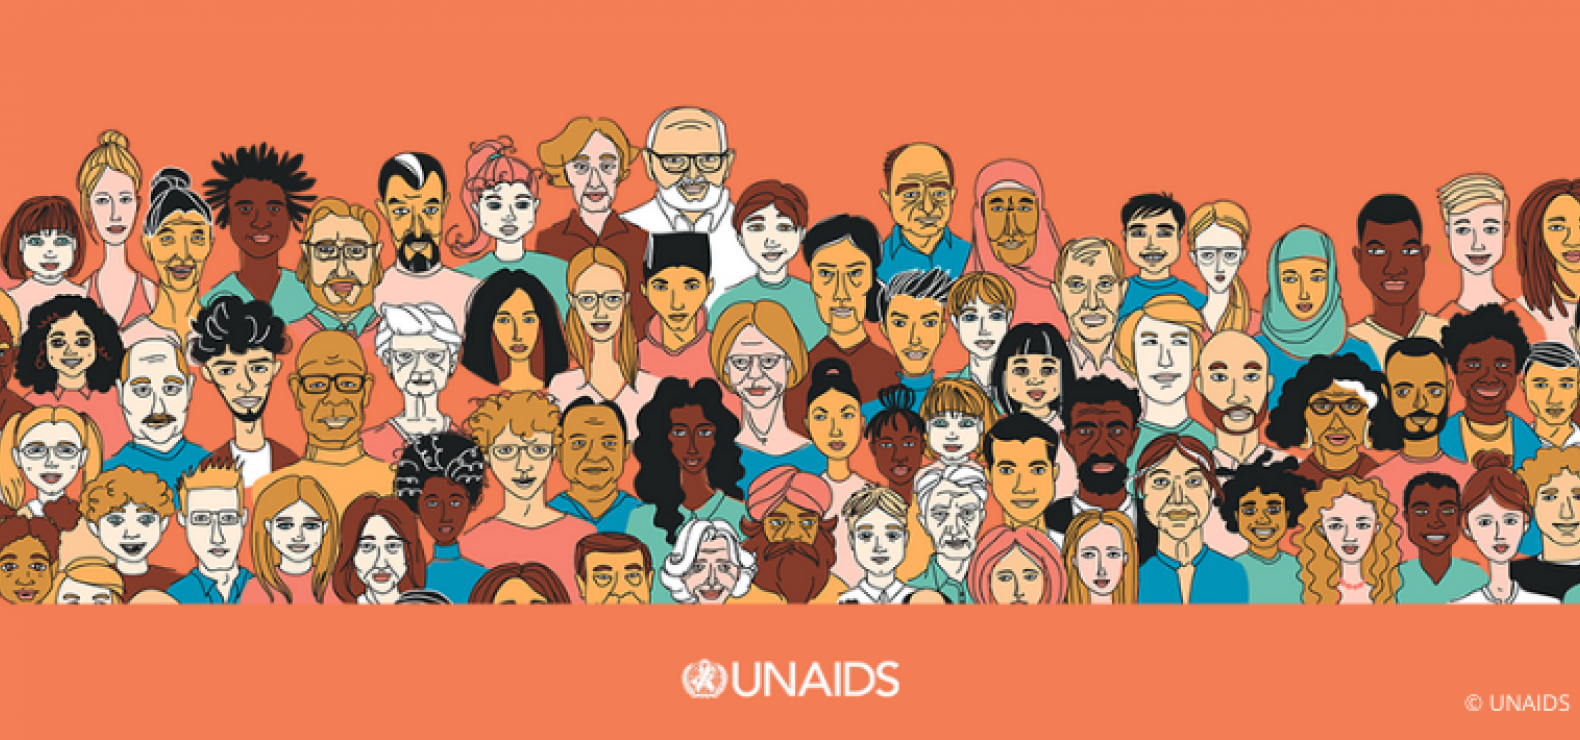 UNAIDS-Grafik zum Global AIDS Update 2020